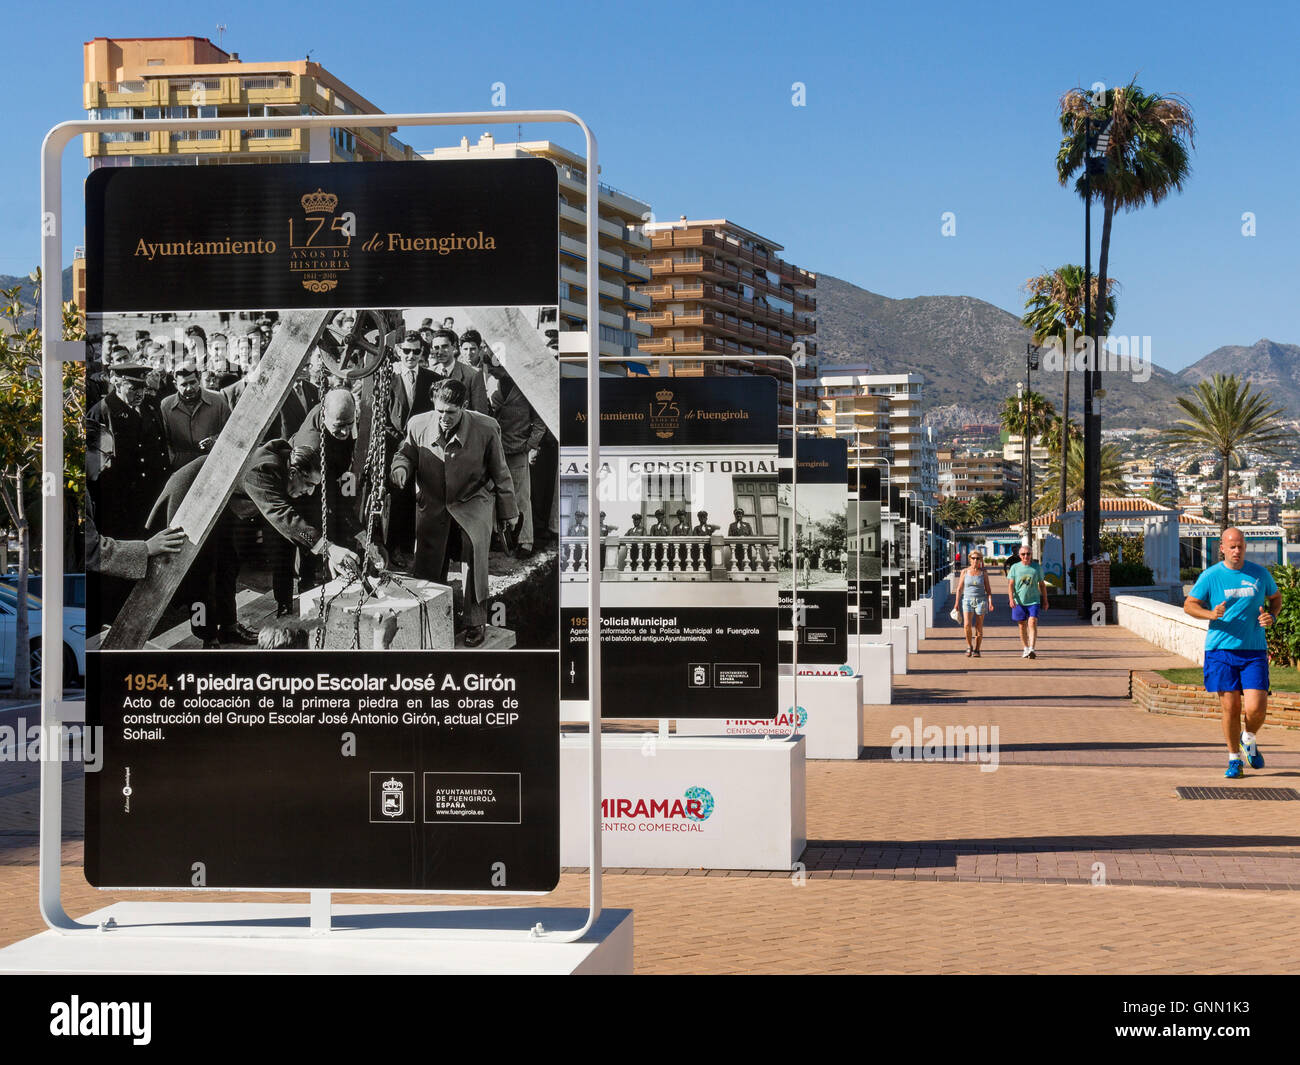 Exhibition of old photographs on the promenade. Fuengirola, Malaga province Costa del Sol. Andalusia southern, Spain - Stock Image